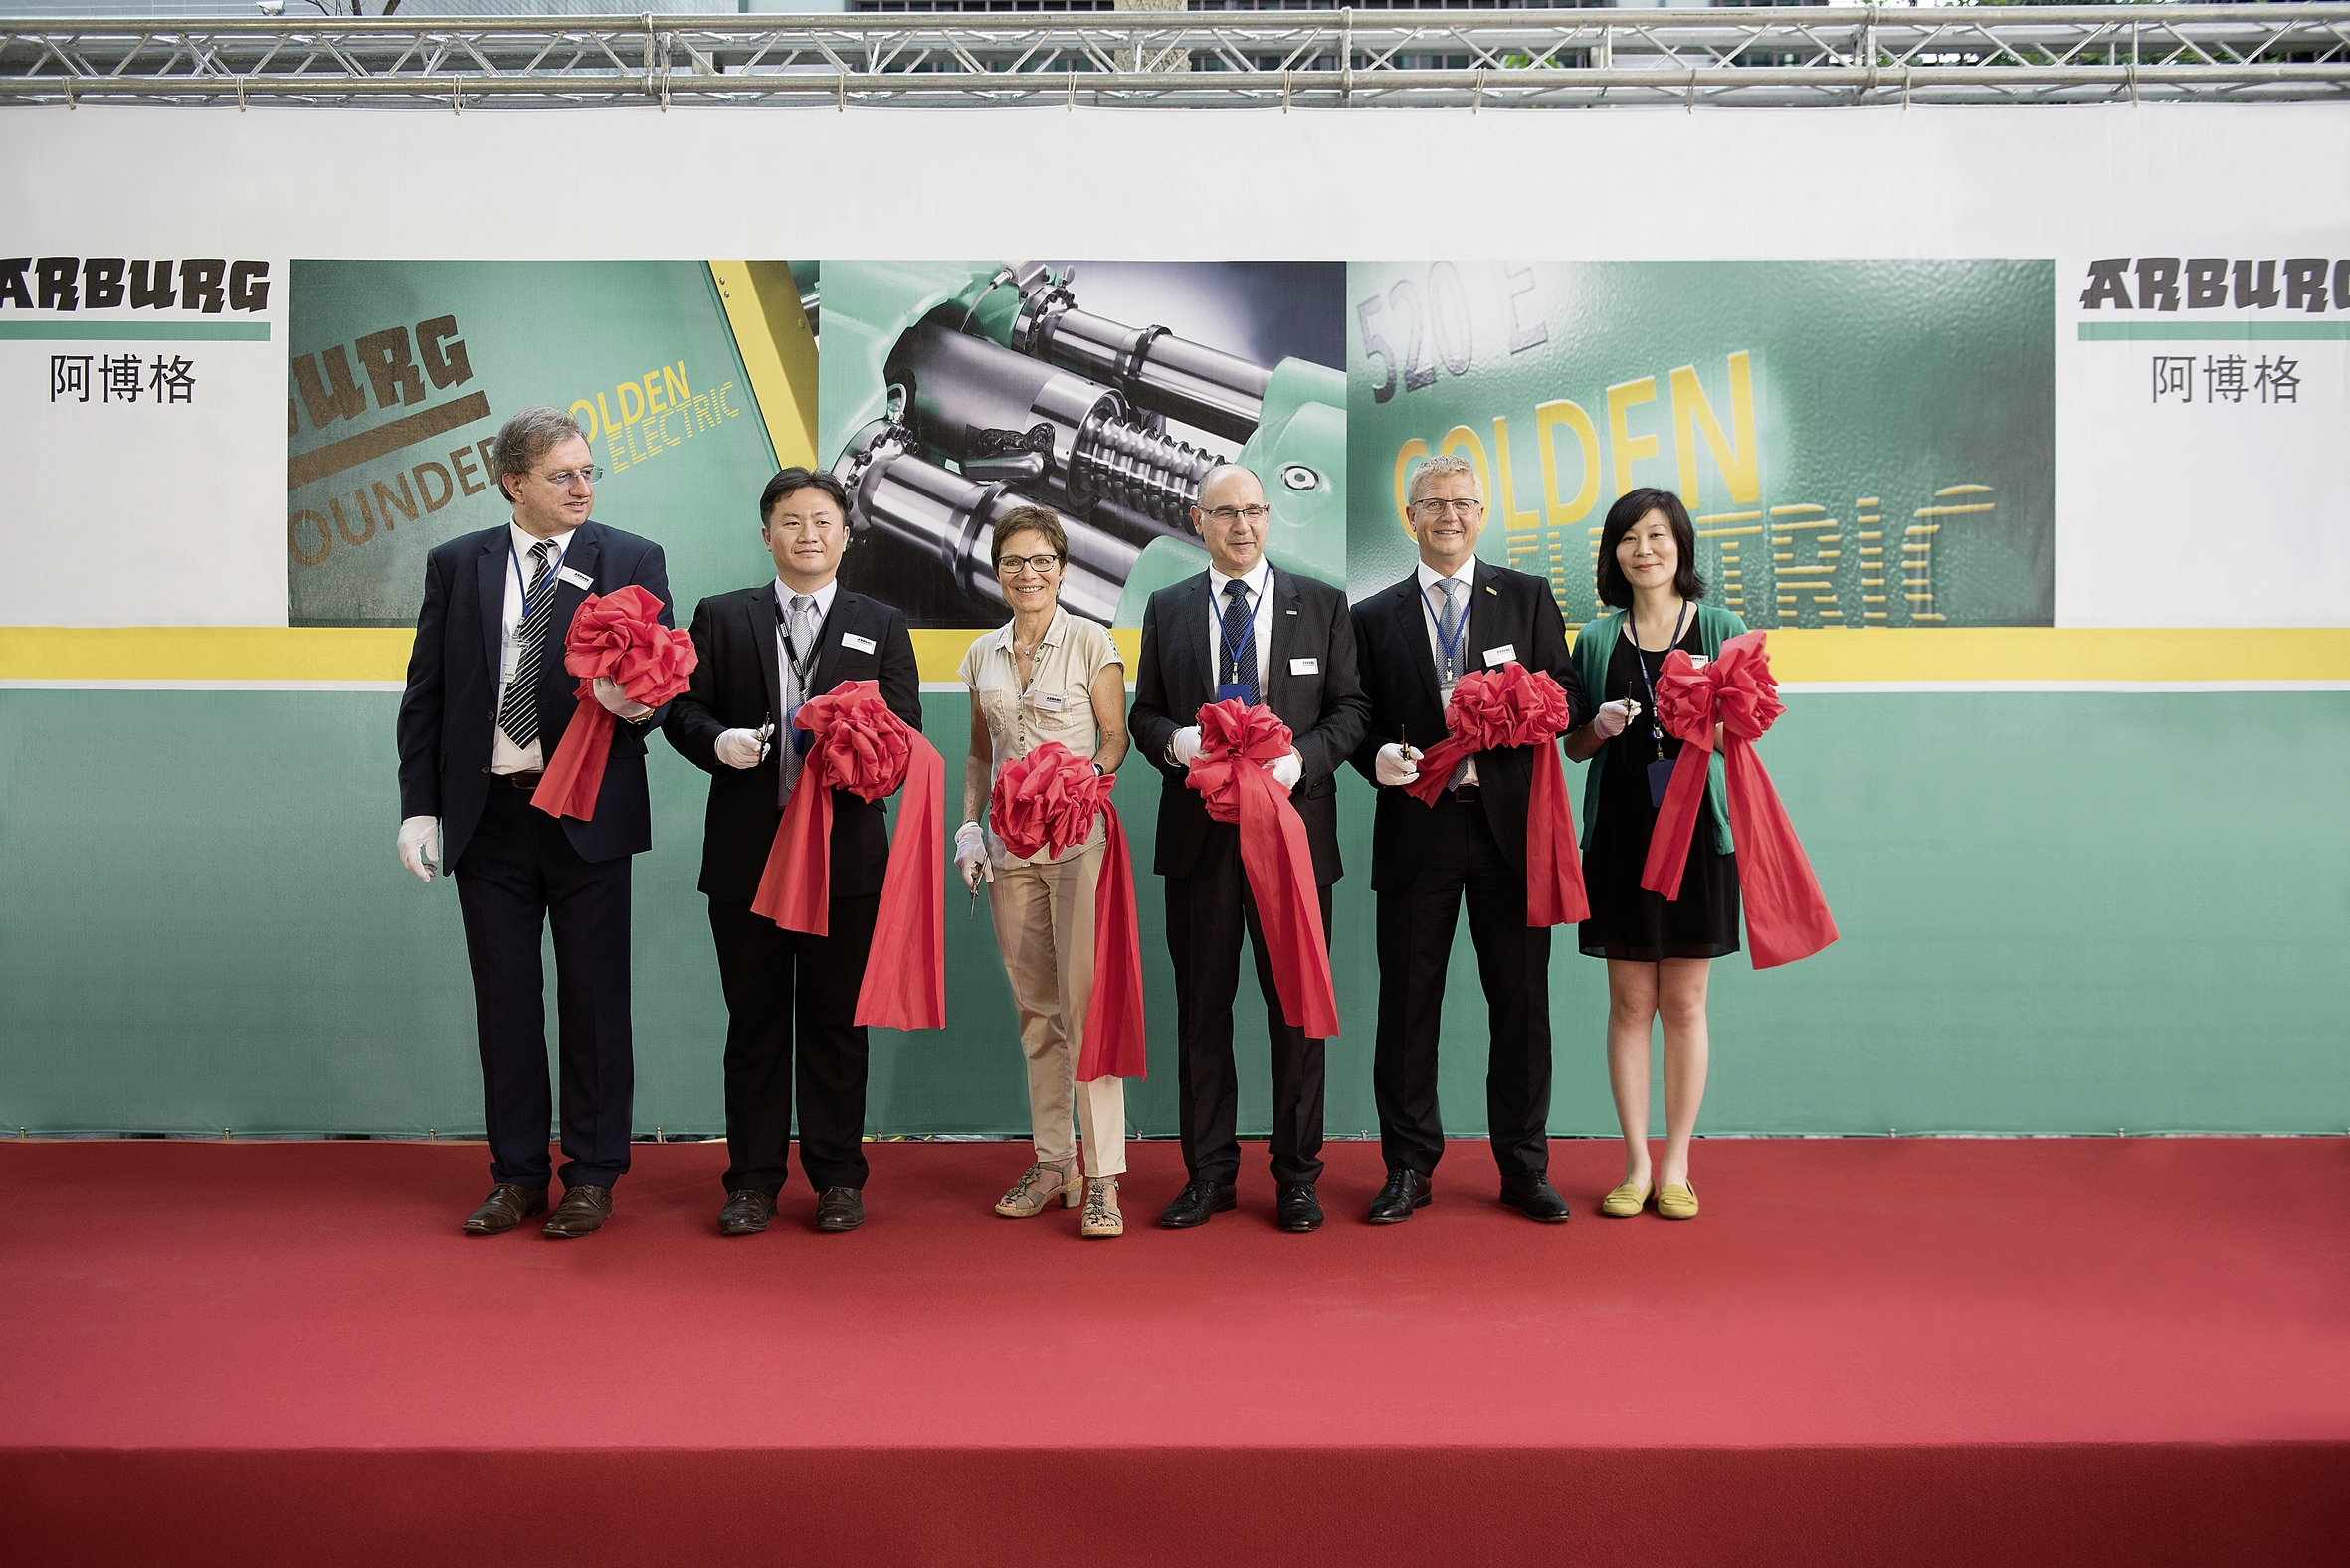 Inauguration ceremony for the Arburg subsidiary in Taiwan: Renate Keinath (3rd from left), Managing Partner, Michael Huang (2nd from left), Managing Director of the Arburg subsidiary in Taiwan, Gerhard Böhm (2nd from right), Managing Director Sales, Andrea Carta (3rd from right), Overseas Sales Director, Georg Anzer (left), Georg Anzer (left), Human Resource Management Director, and Hazel Liu (right), Senior Finance Manager in Taiwan. Photo: ARBURG - Traveler H.